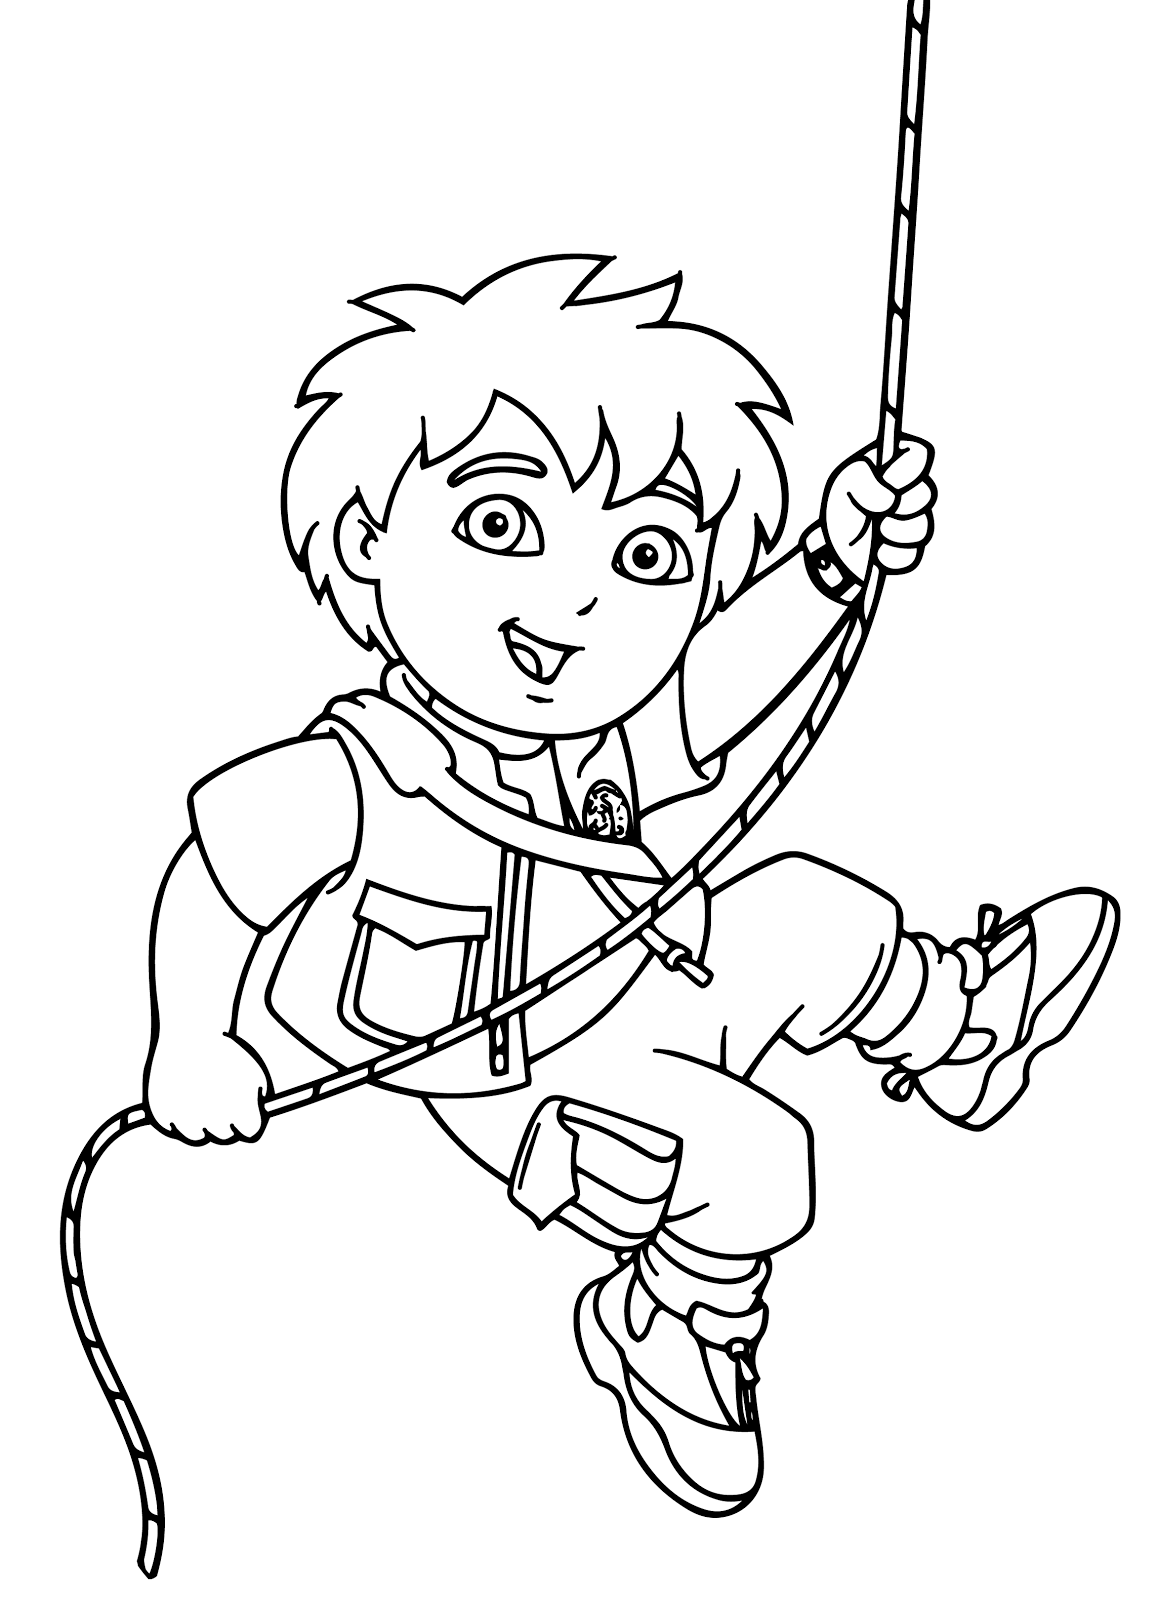 coloring pages dora and diego printables | Dora Diego Coloring Pages - Coloring Home